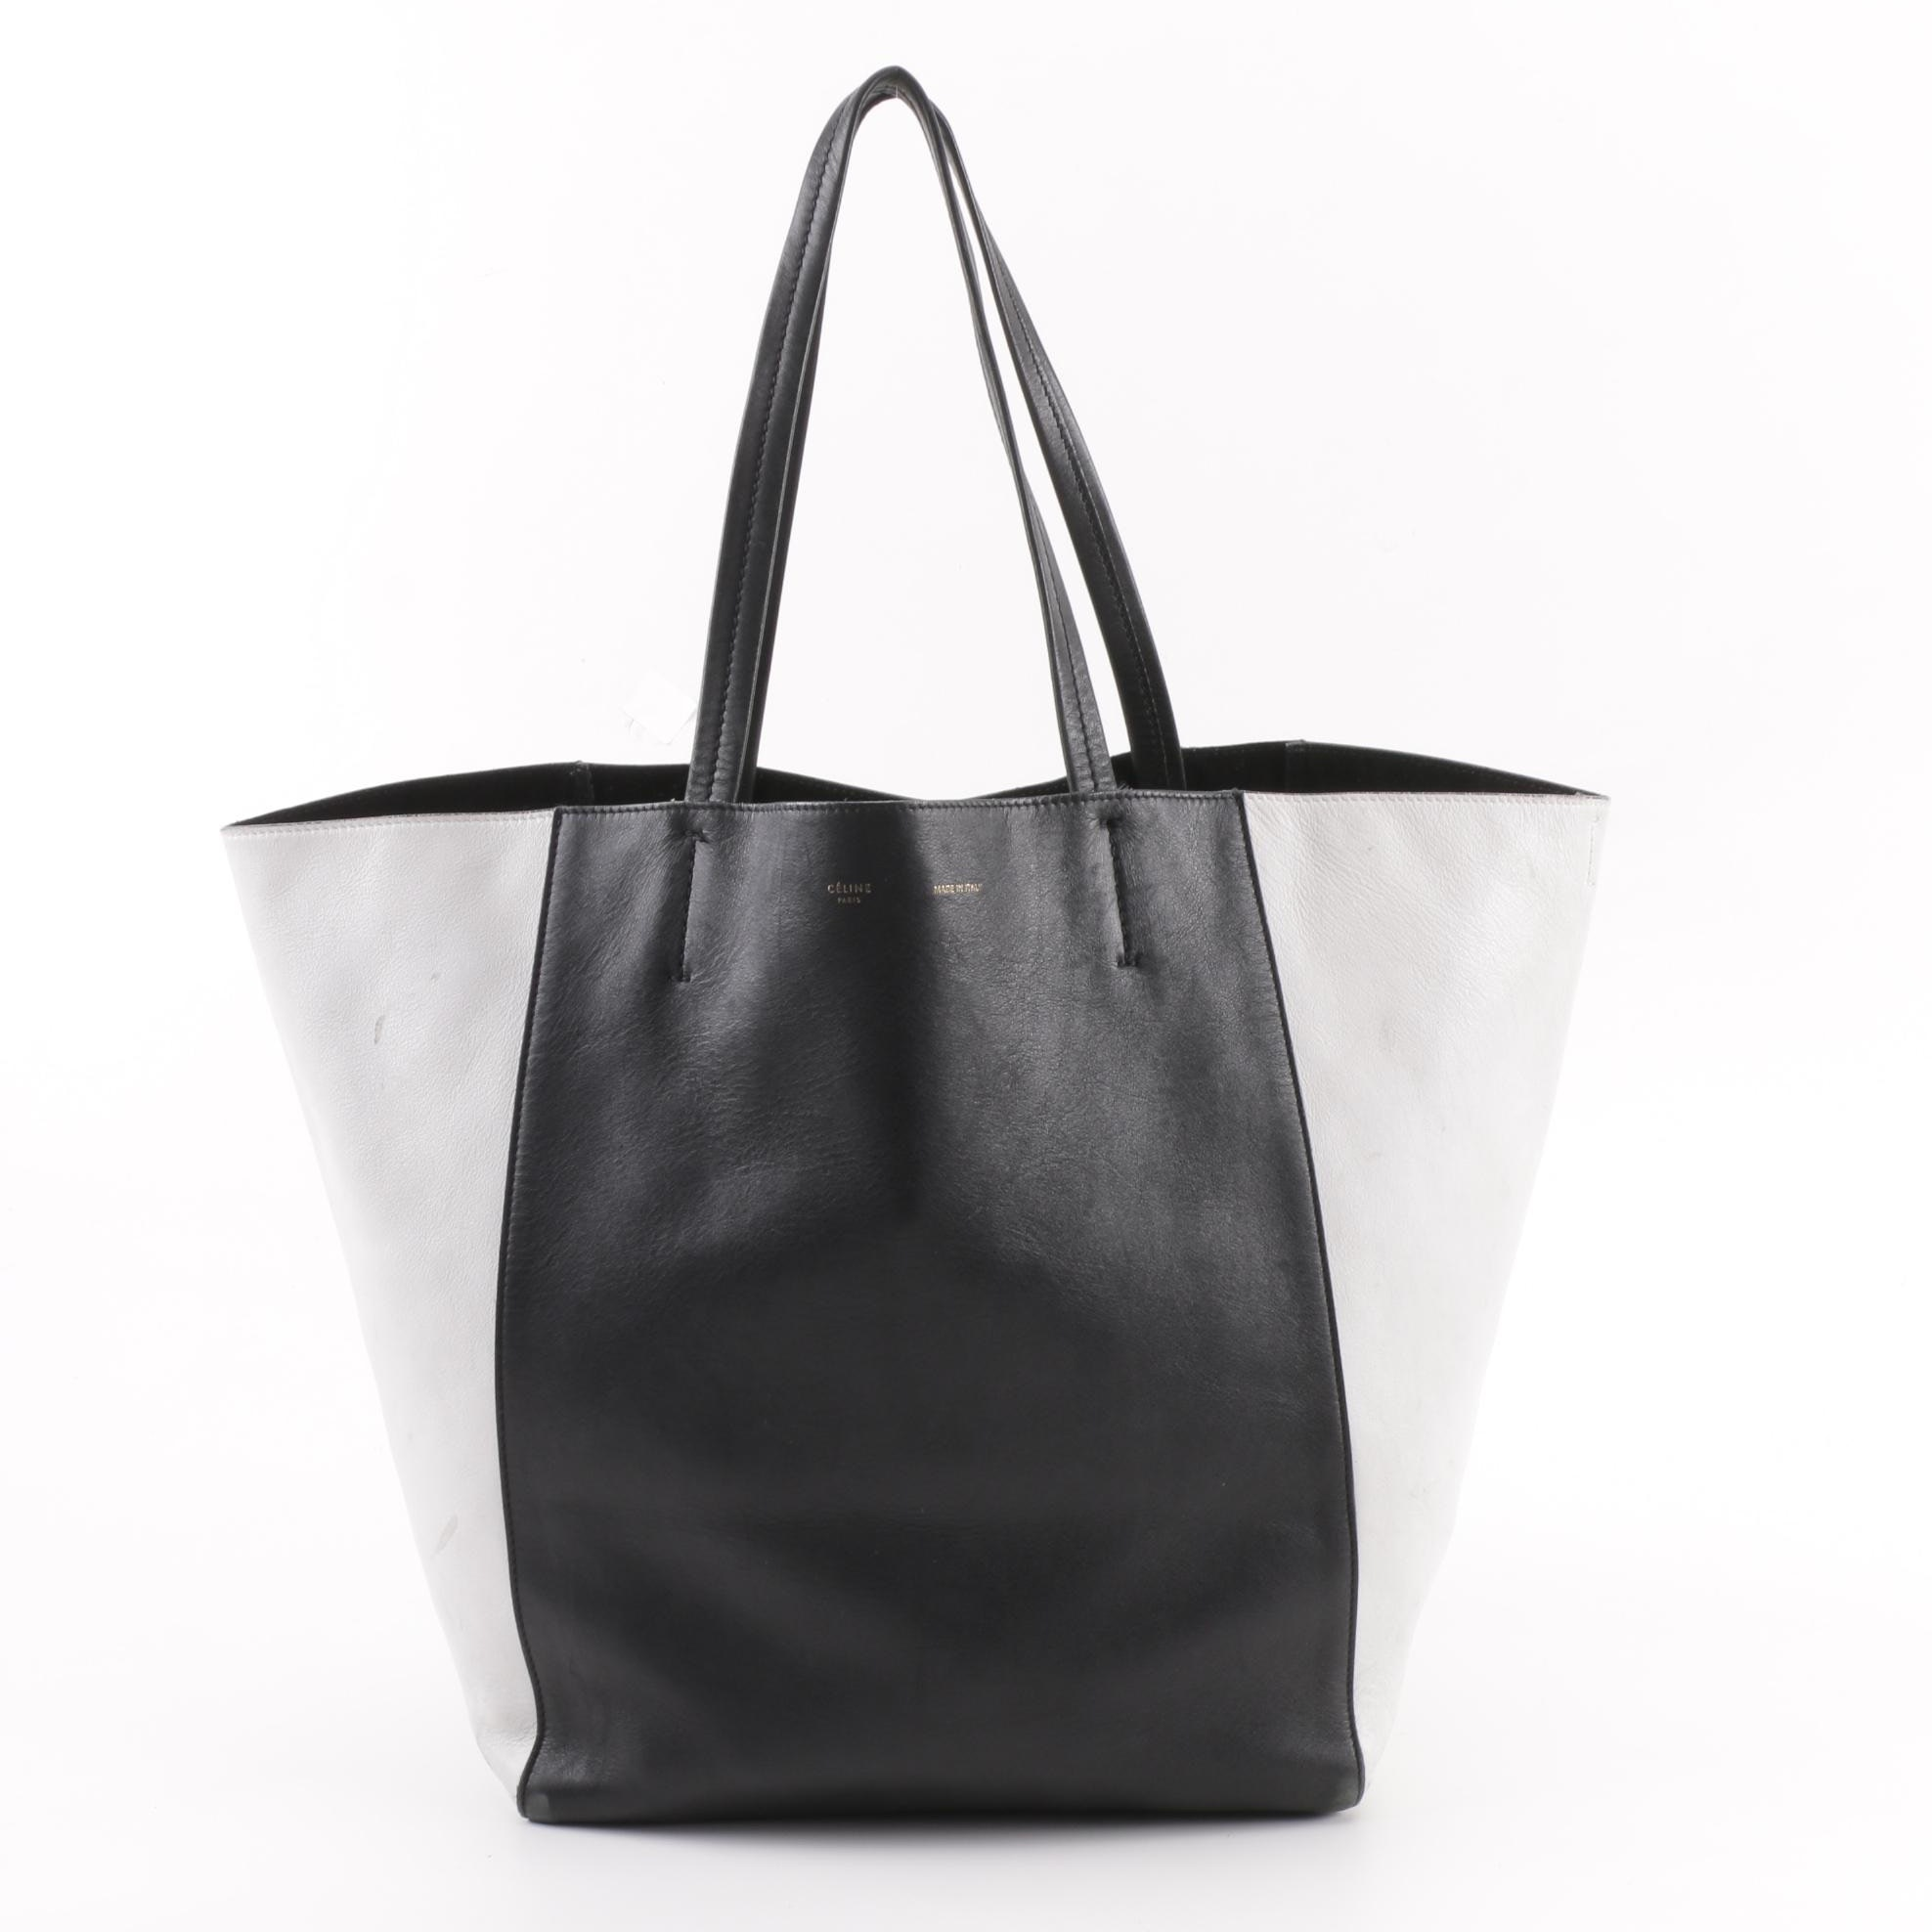 Céline Black and White Calfskin Leather Phantom Cabas Tote Bag